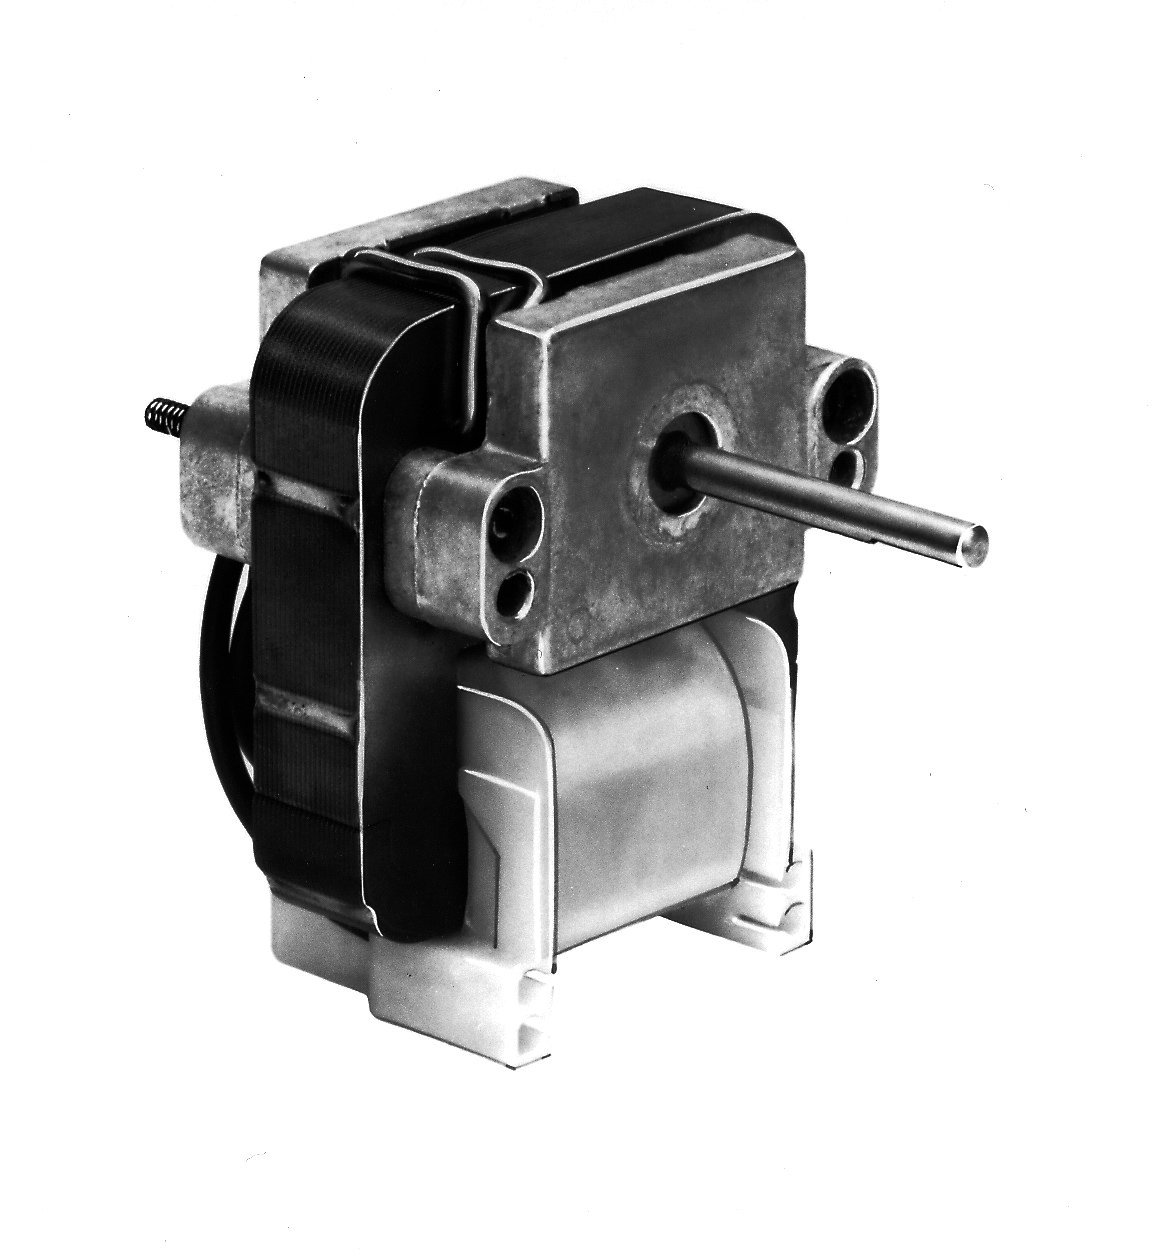 Fasco K102 C Frame Open K Line Shaded Pole OEM Replacement Electric Motor with Sleeve Bearing, 1/200HP, 1100rpm, 115VAC, 60Hz, 0.57 amps, For Wall Heater